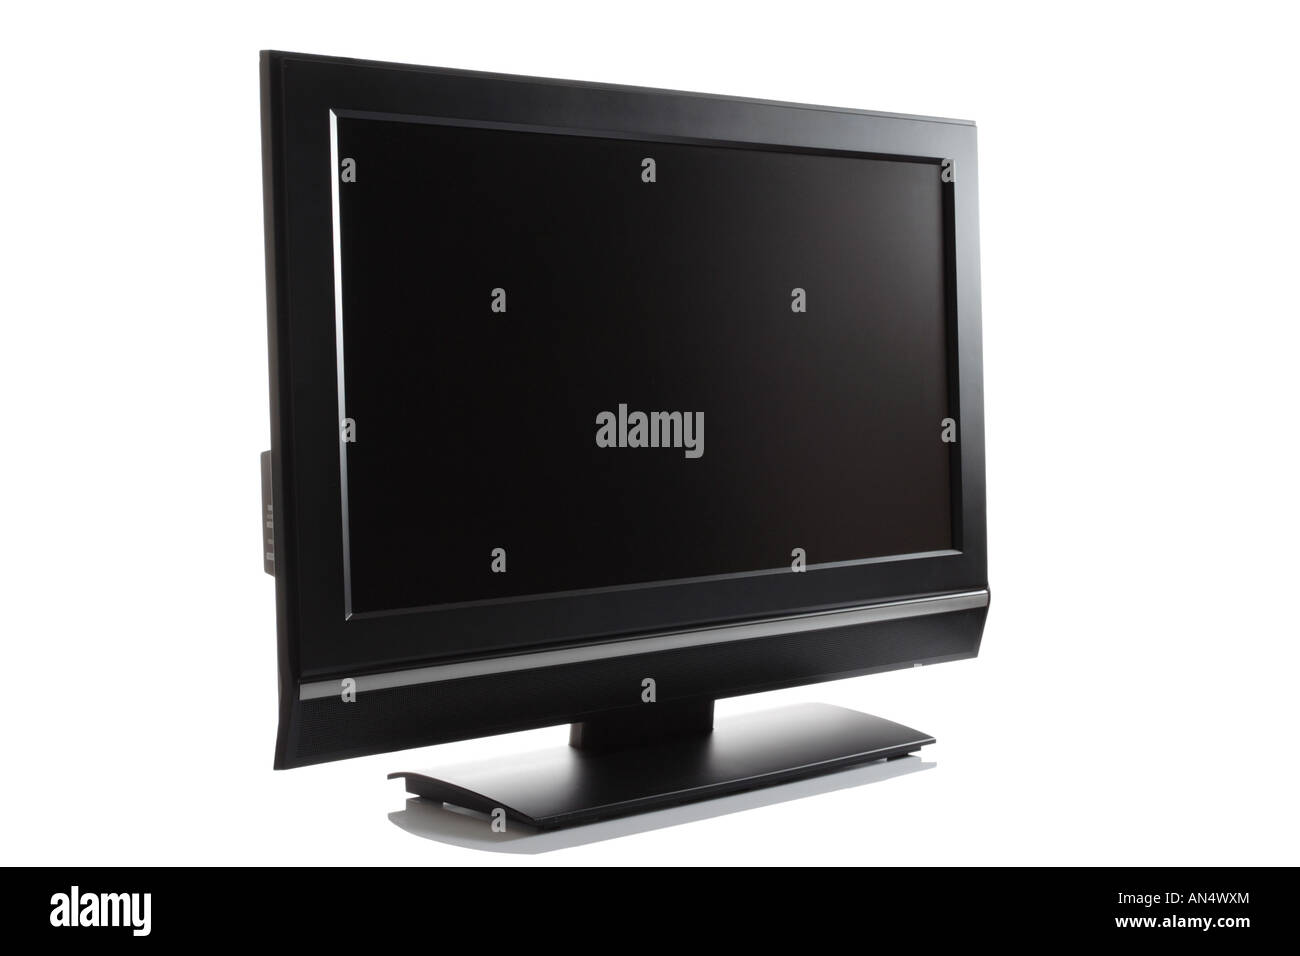 LCD high definition flat screen TV - Stock Image